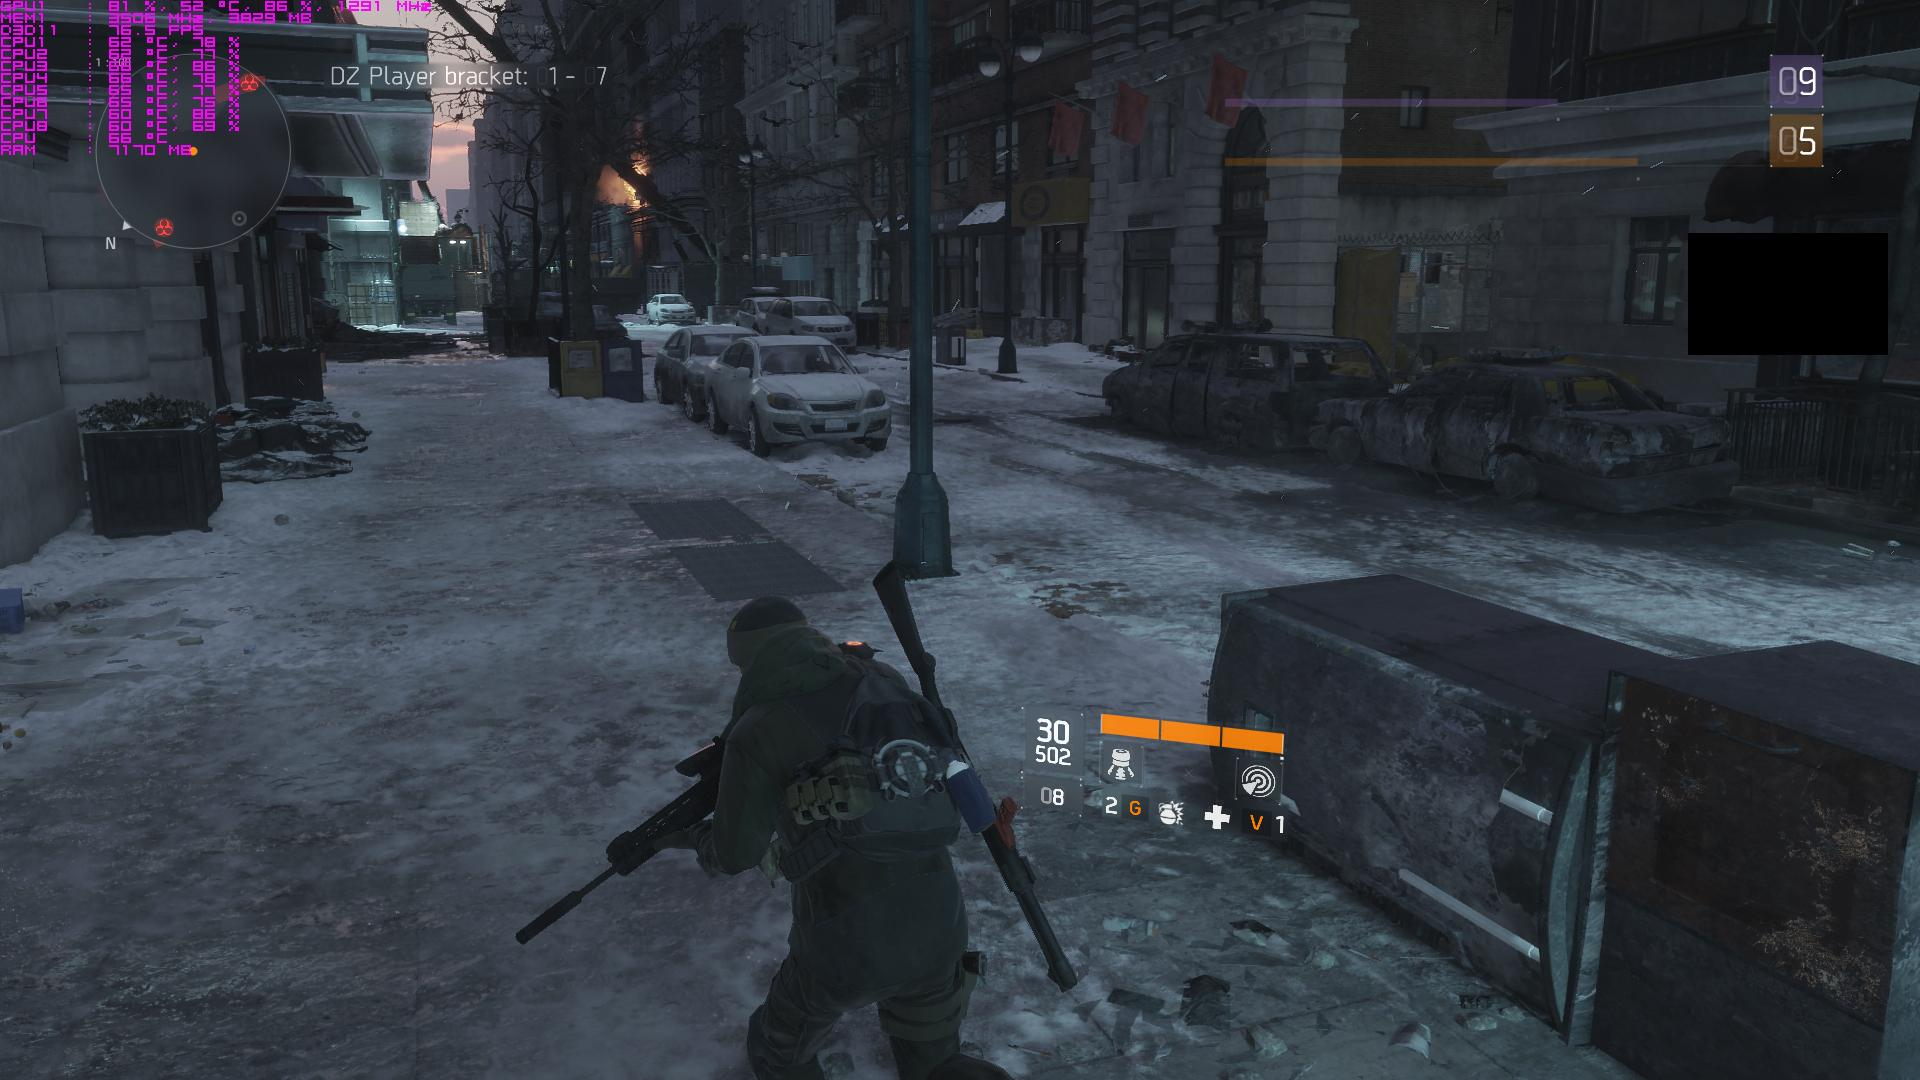 The Division Maxed Out PC Screenshots Look Completely Different From Ubisofts 4K PC Screenshots